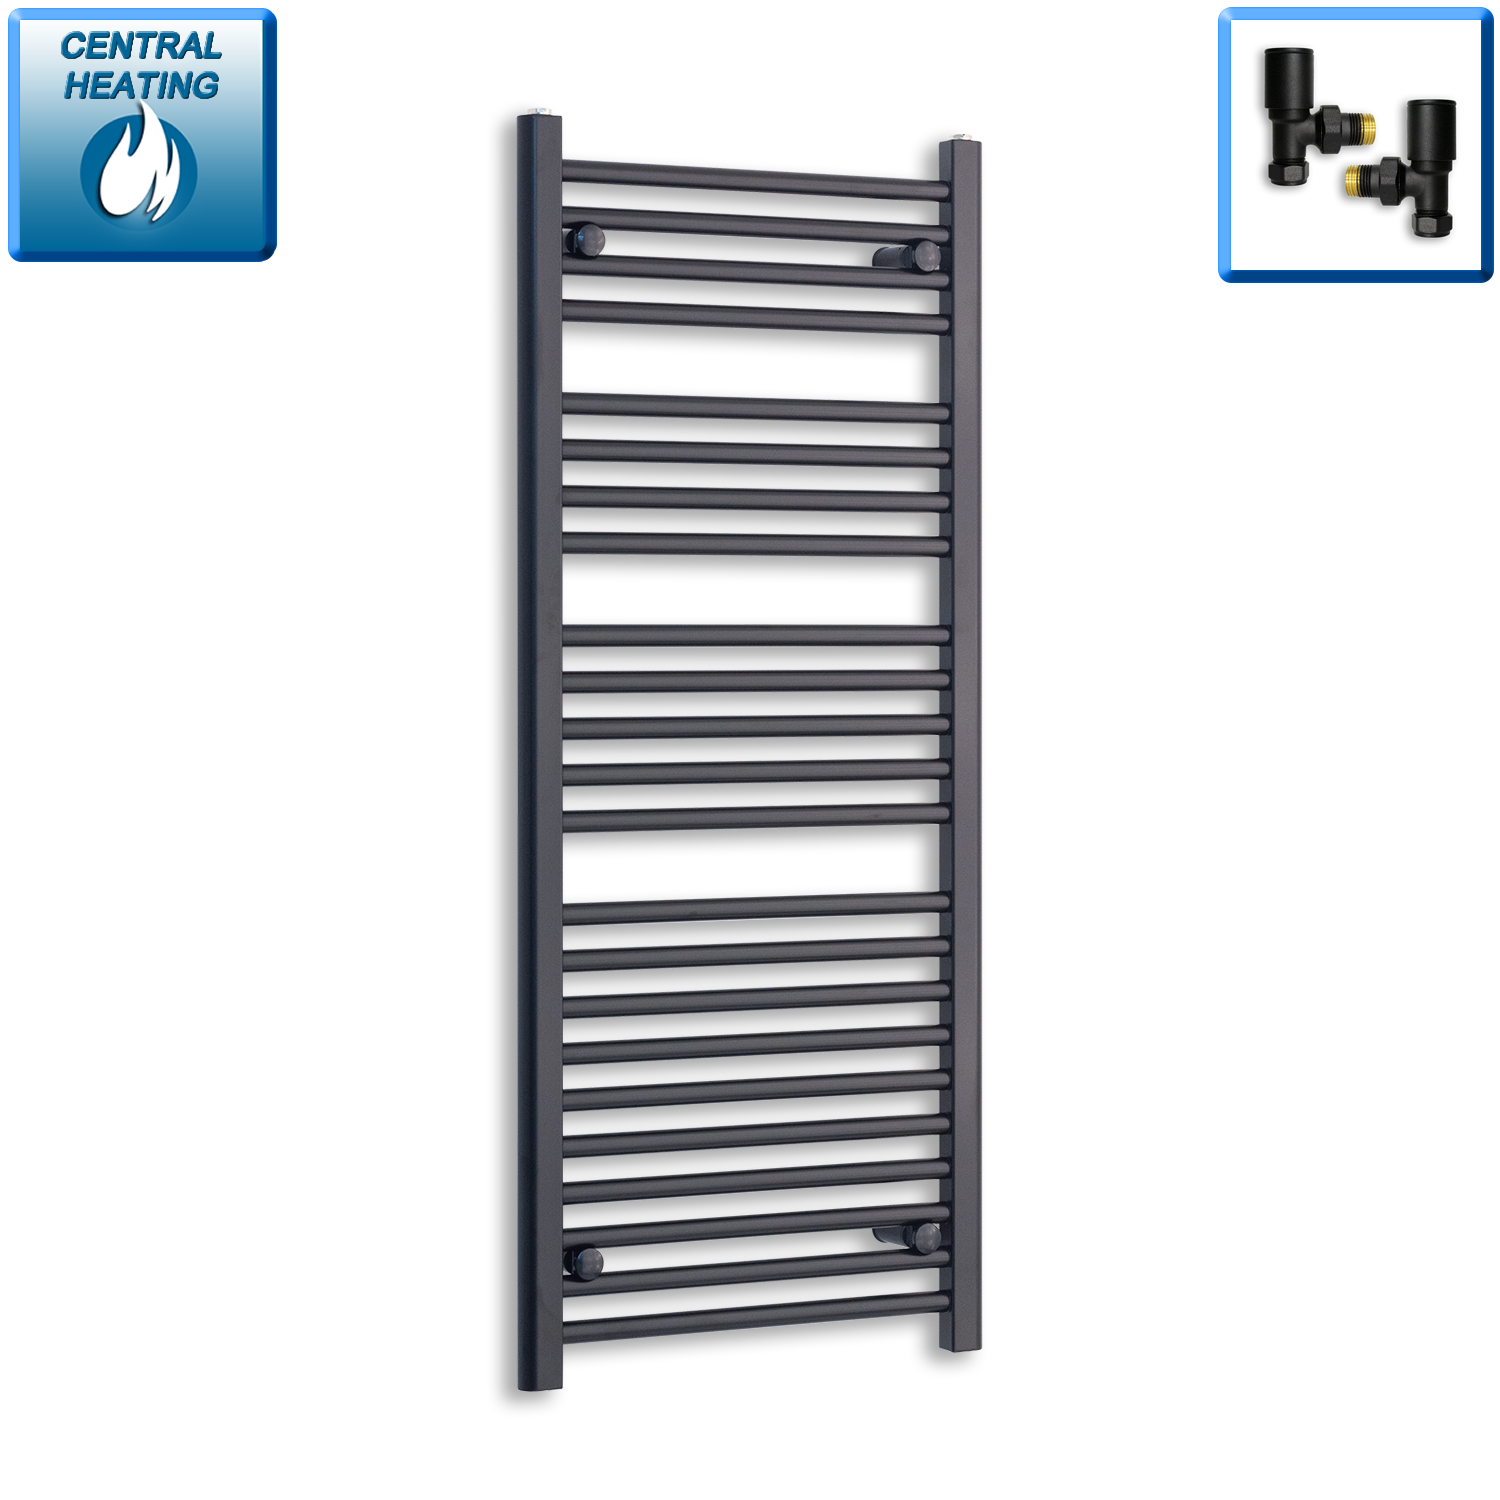 500mm Wide 1200mm High Black Towel Rail Radiator With Angled Valve